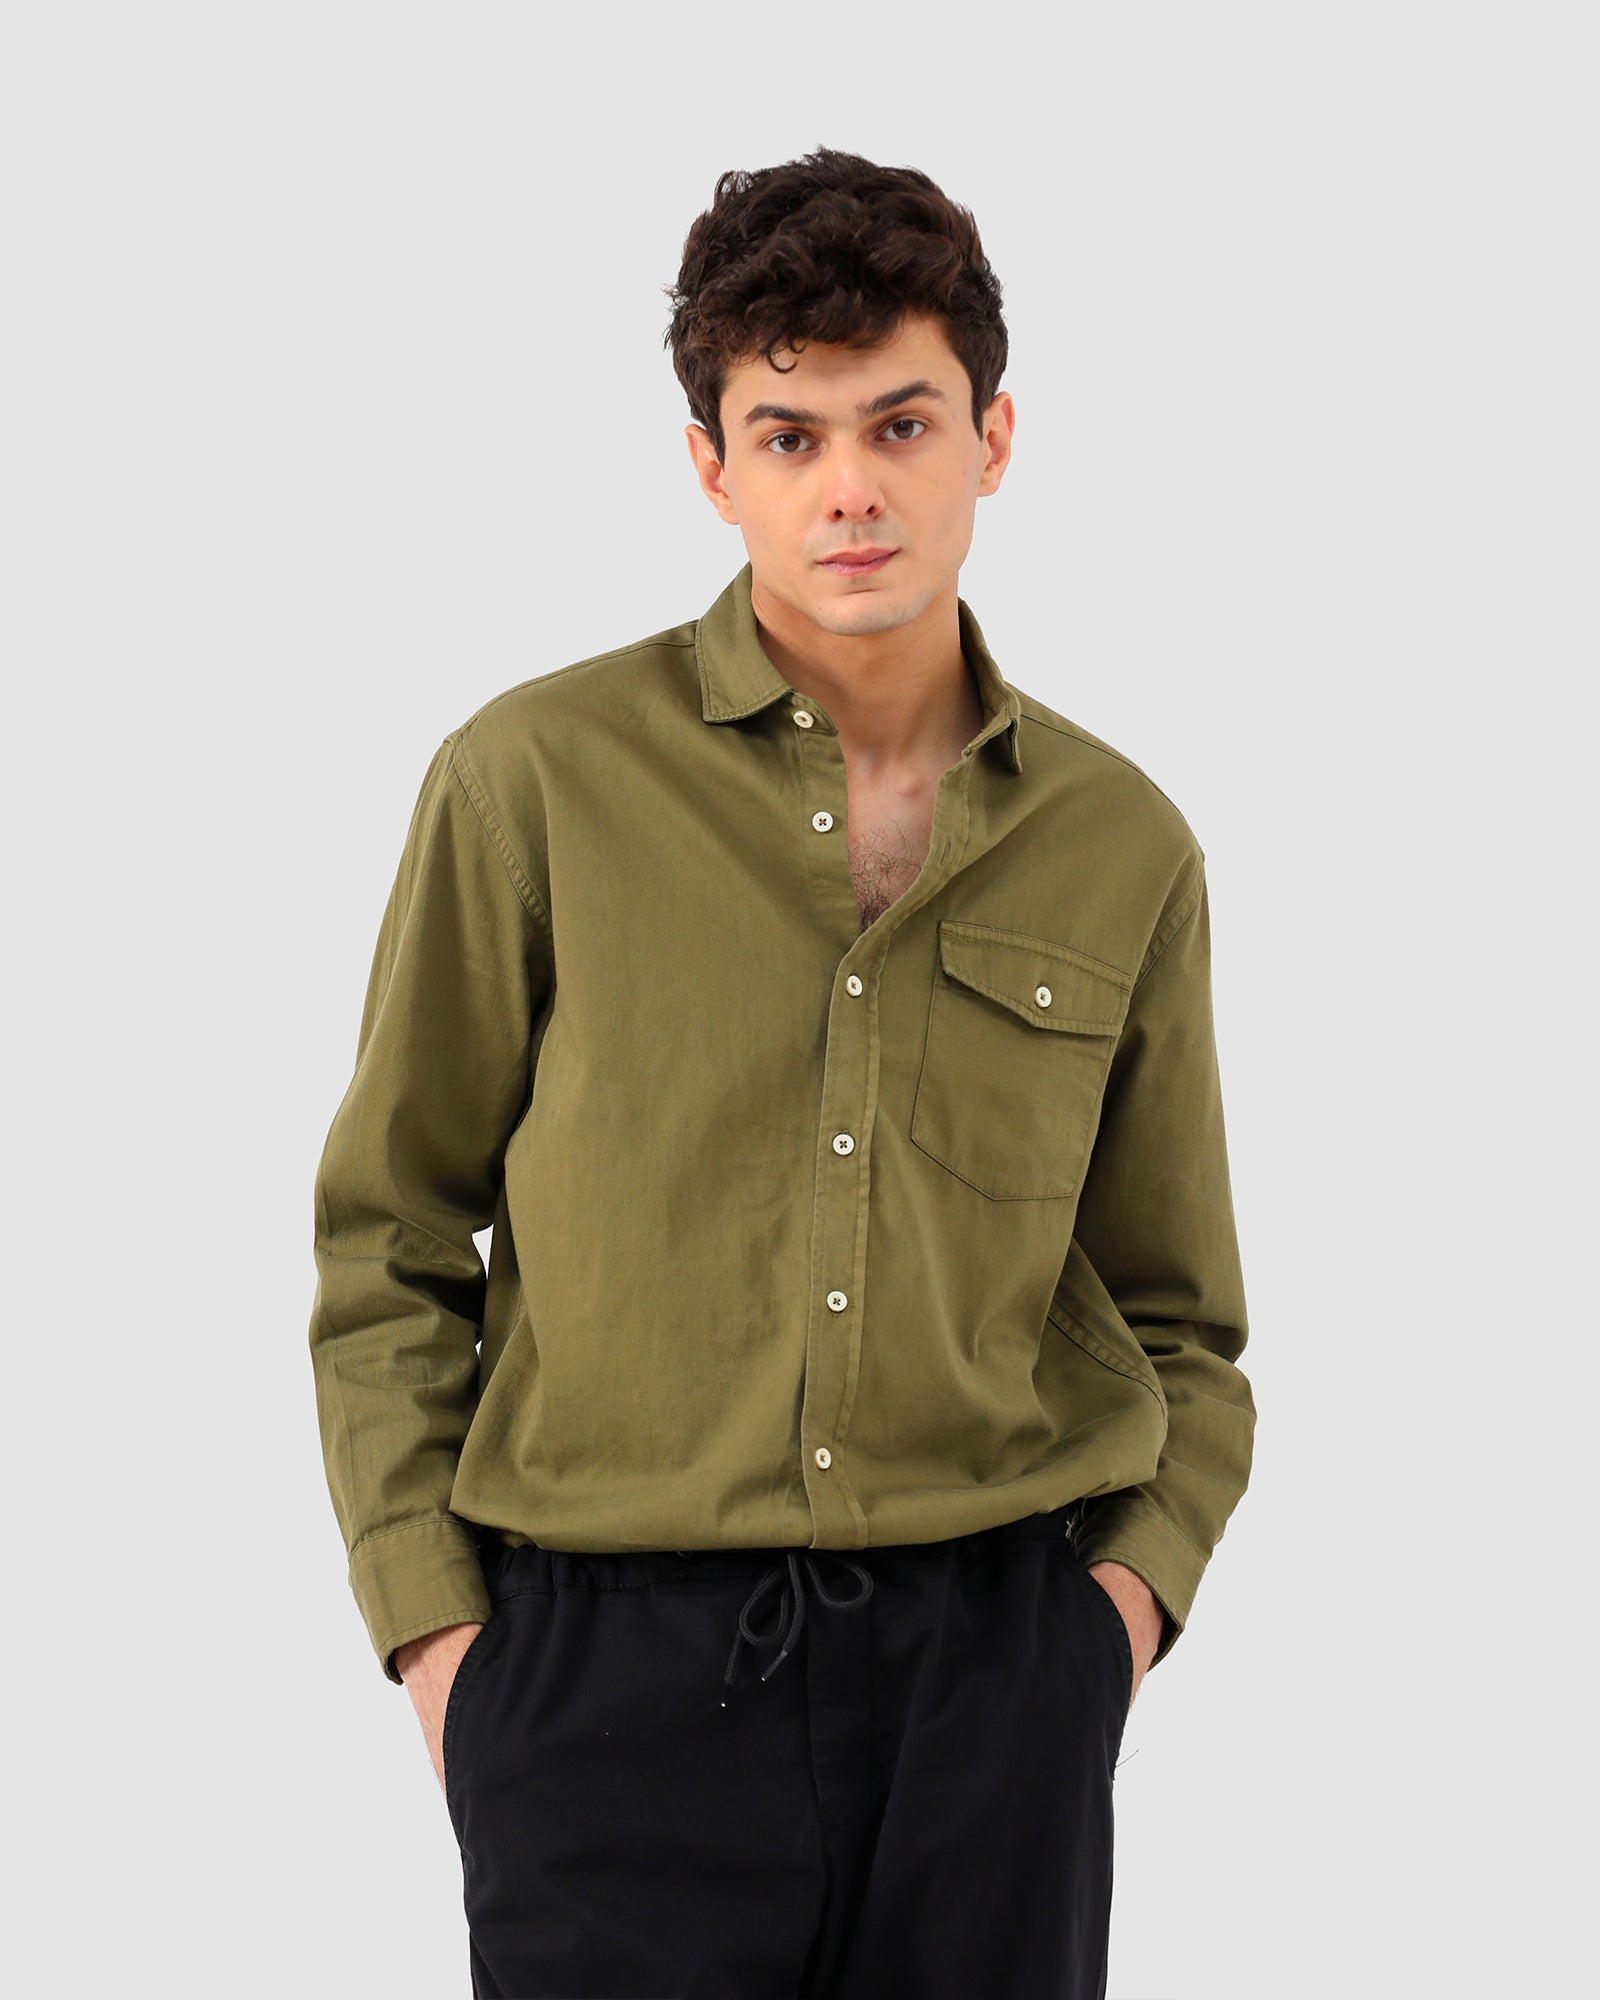 Textured Shirt with Flap Pockets